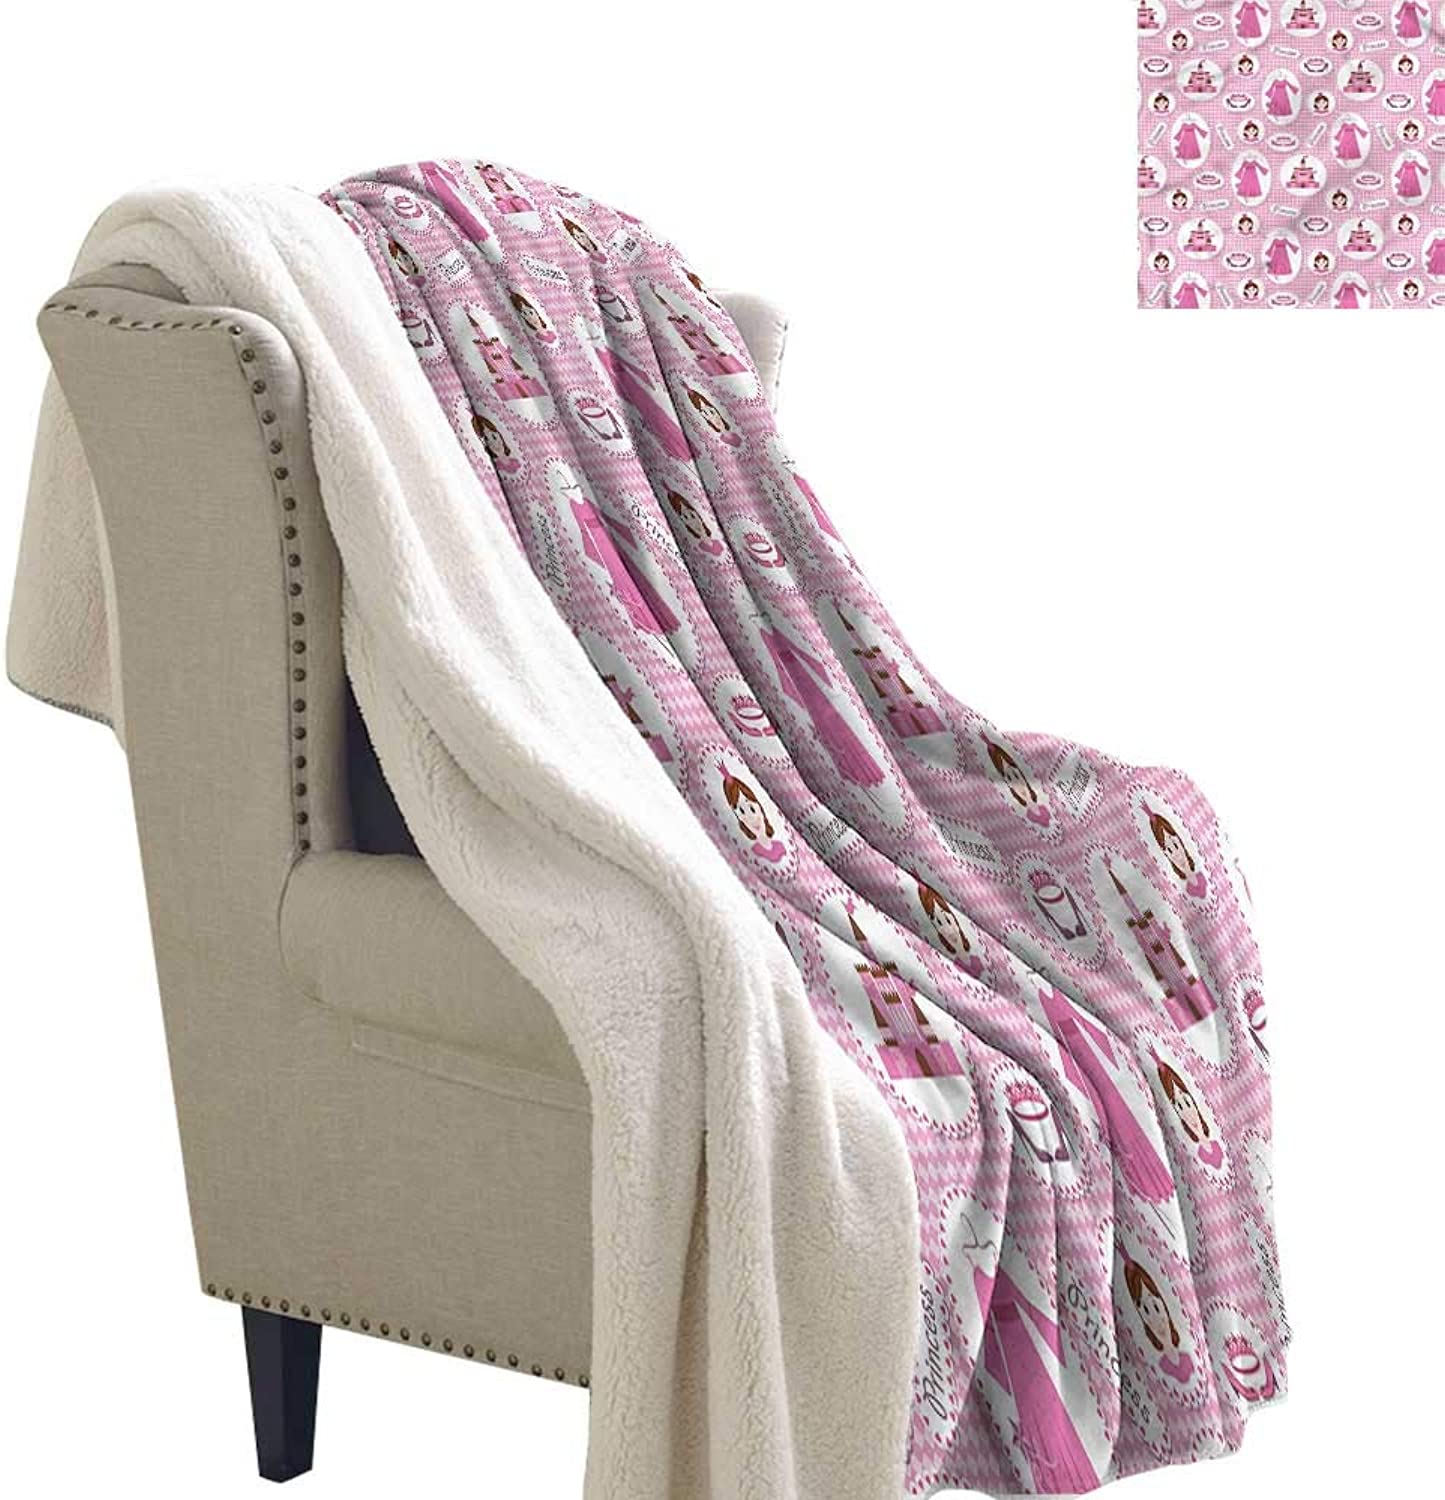 AndyTours Outdoor Blanket Princess Girl Tiara Castle Dress Blanket for Family and Friends W59 x L31